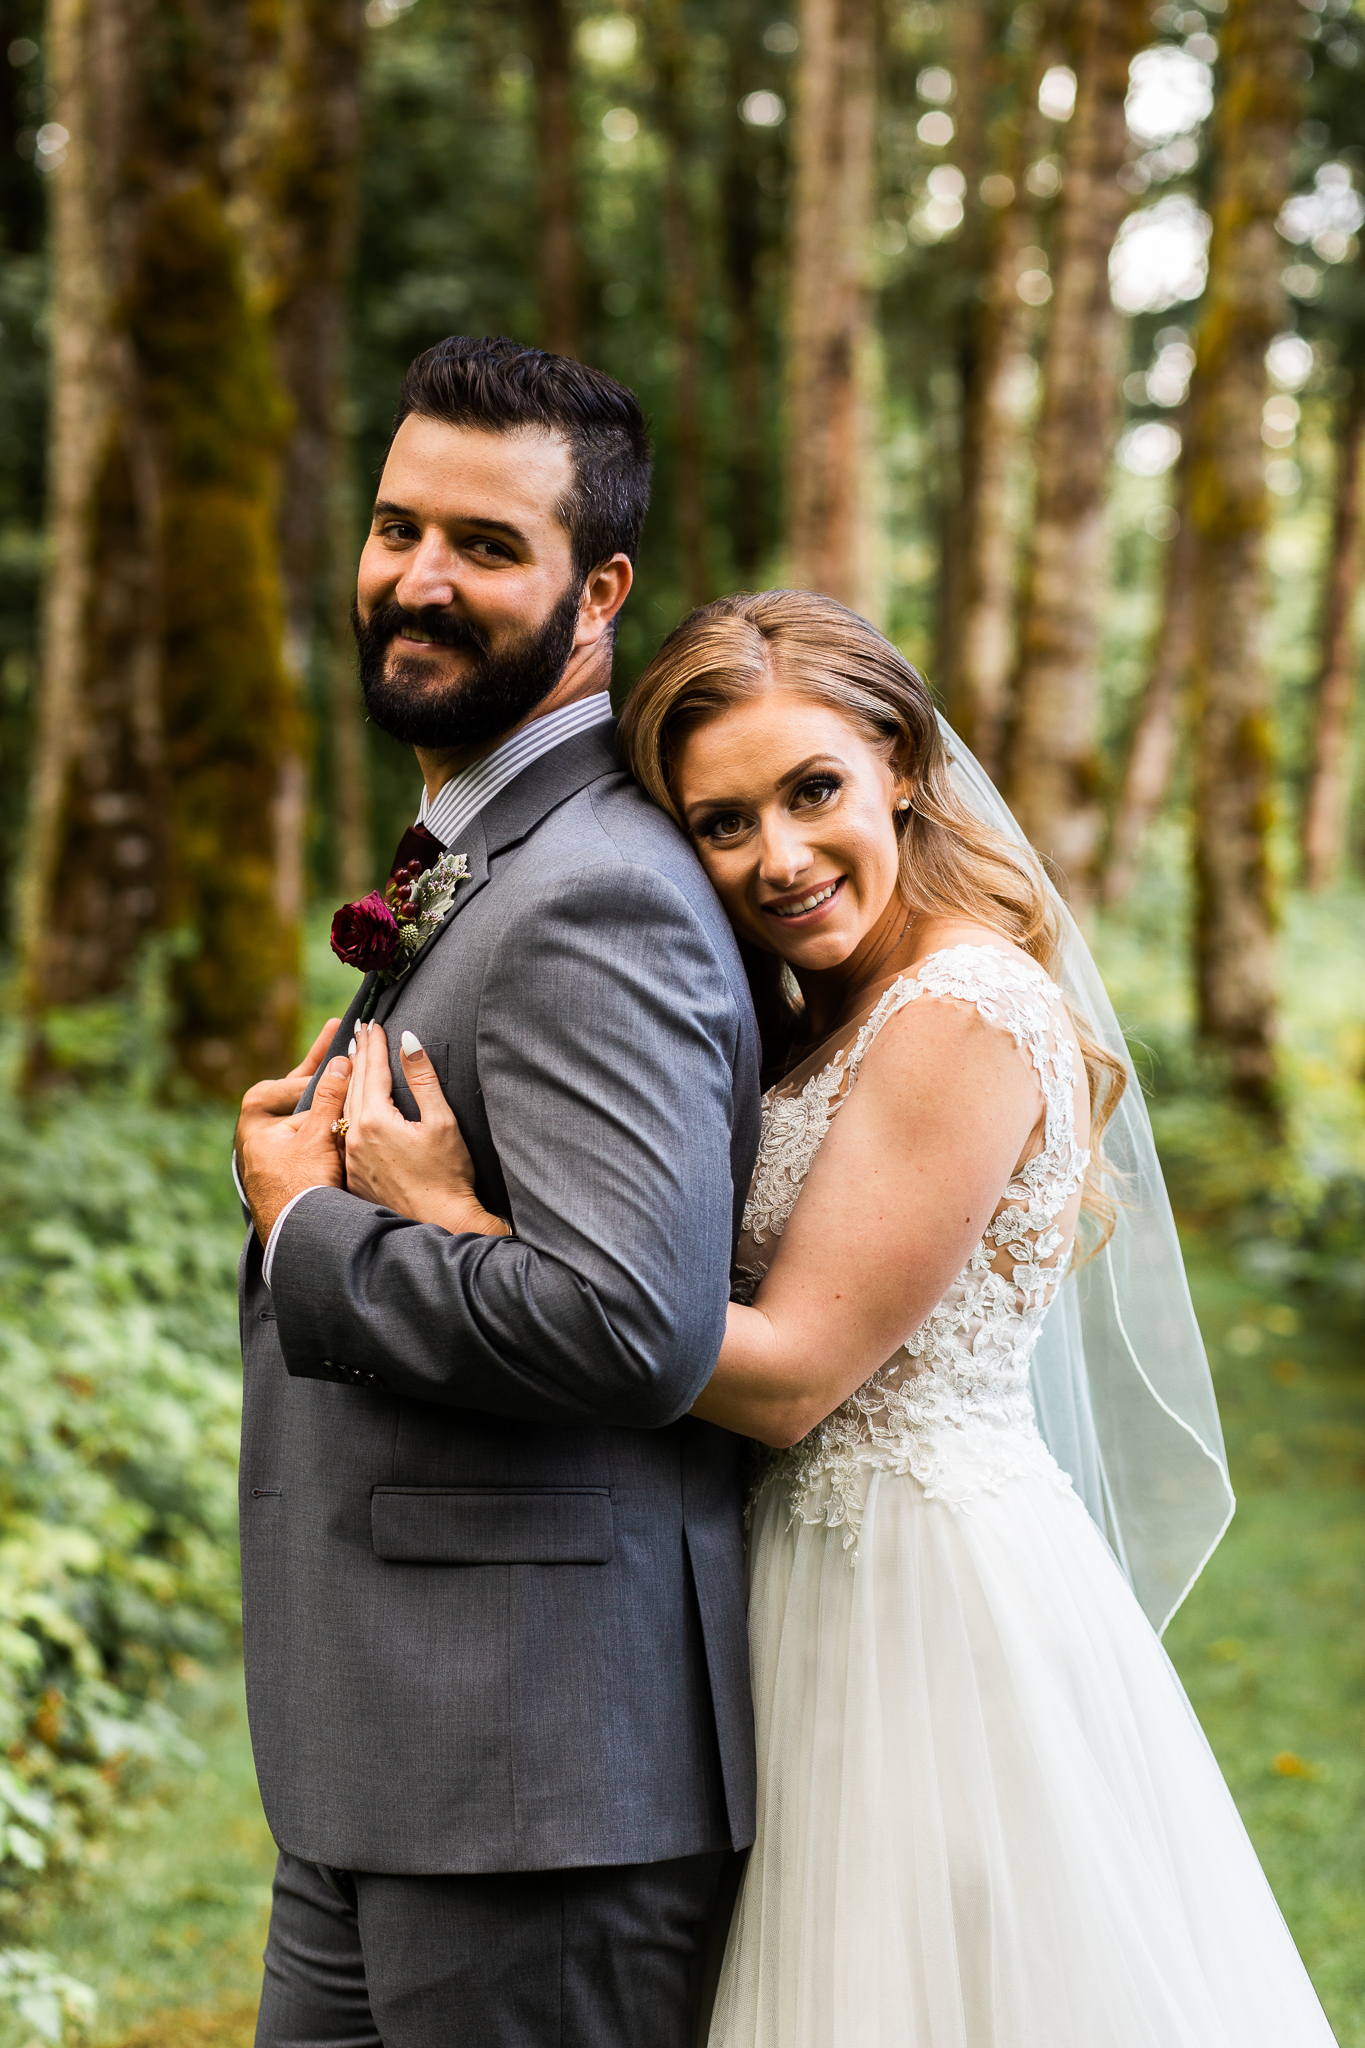 Alayna & Eric - wedding -  Bridal Veil Lakes, OR - Malina Rose Photography-36.jpg